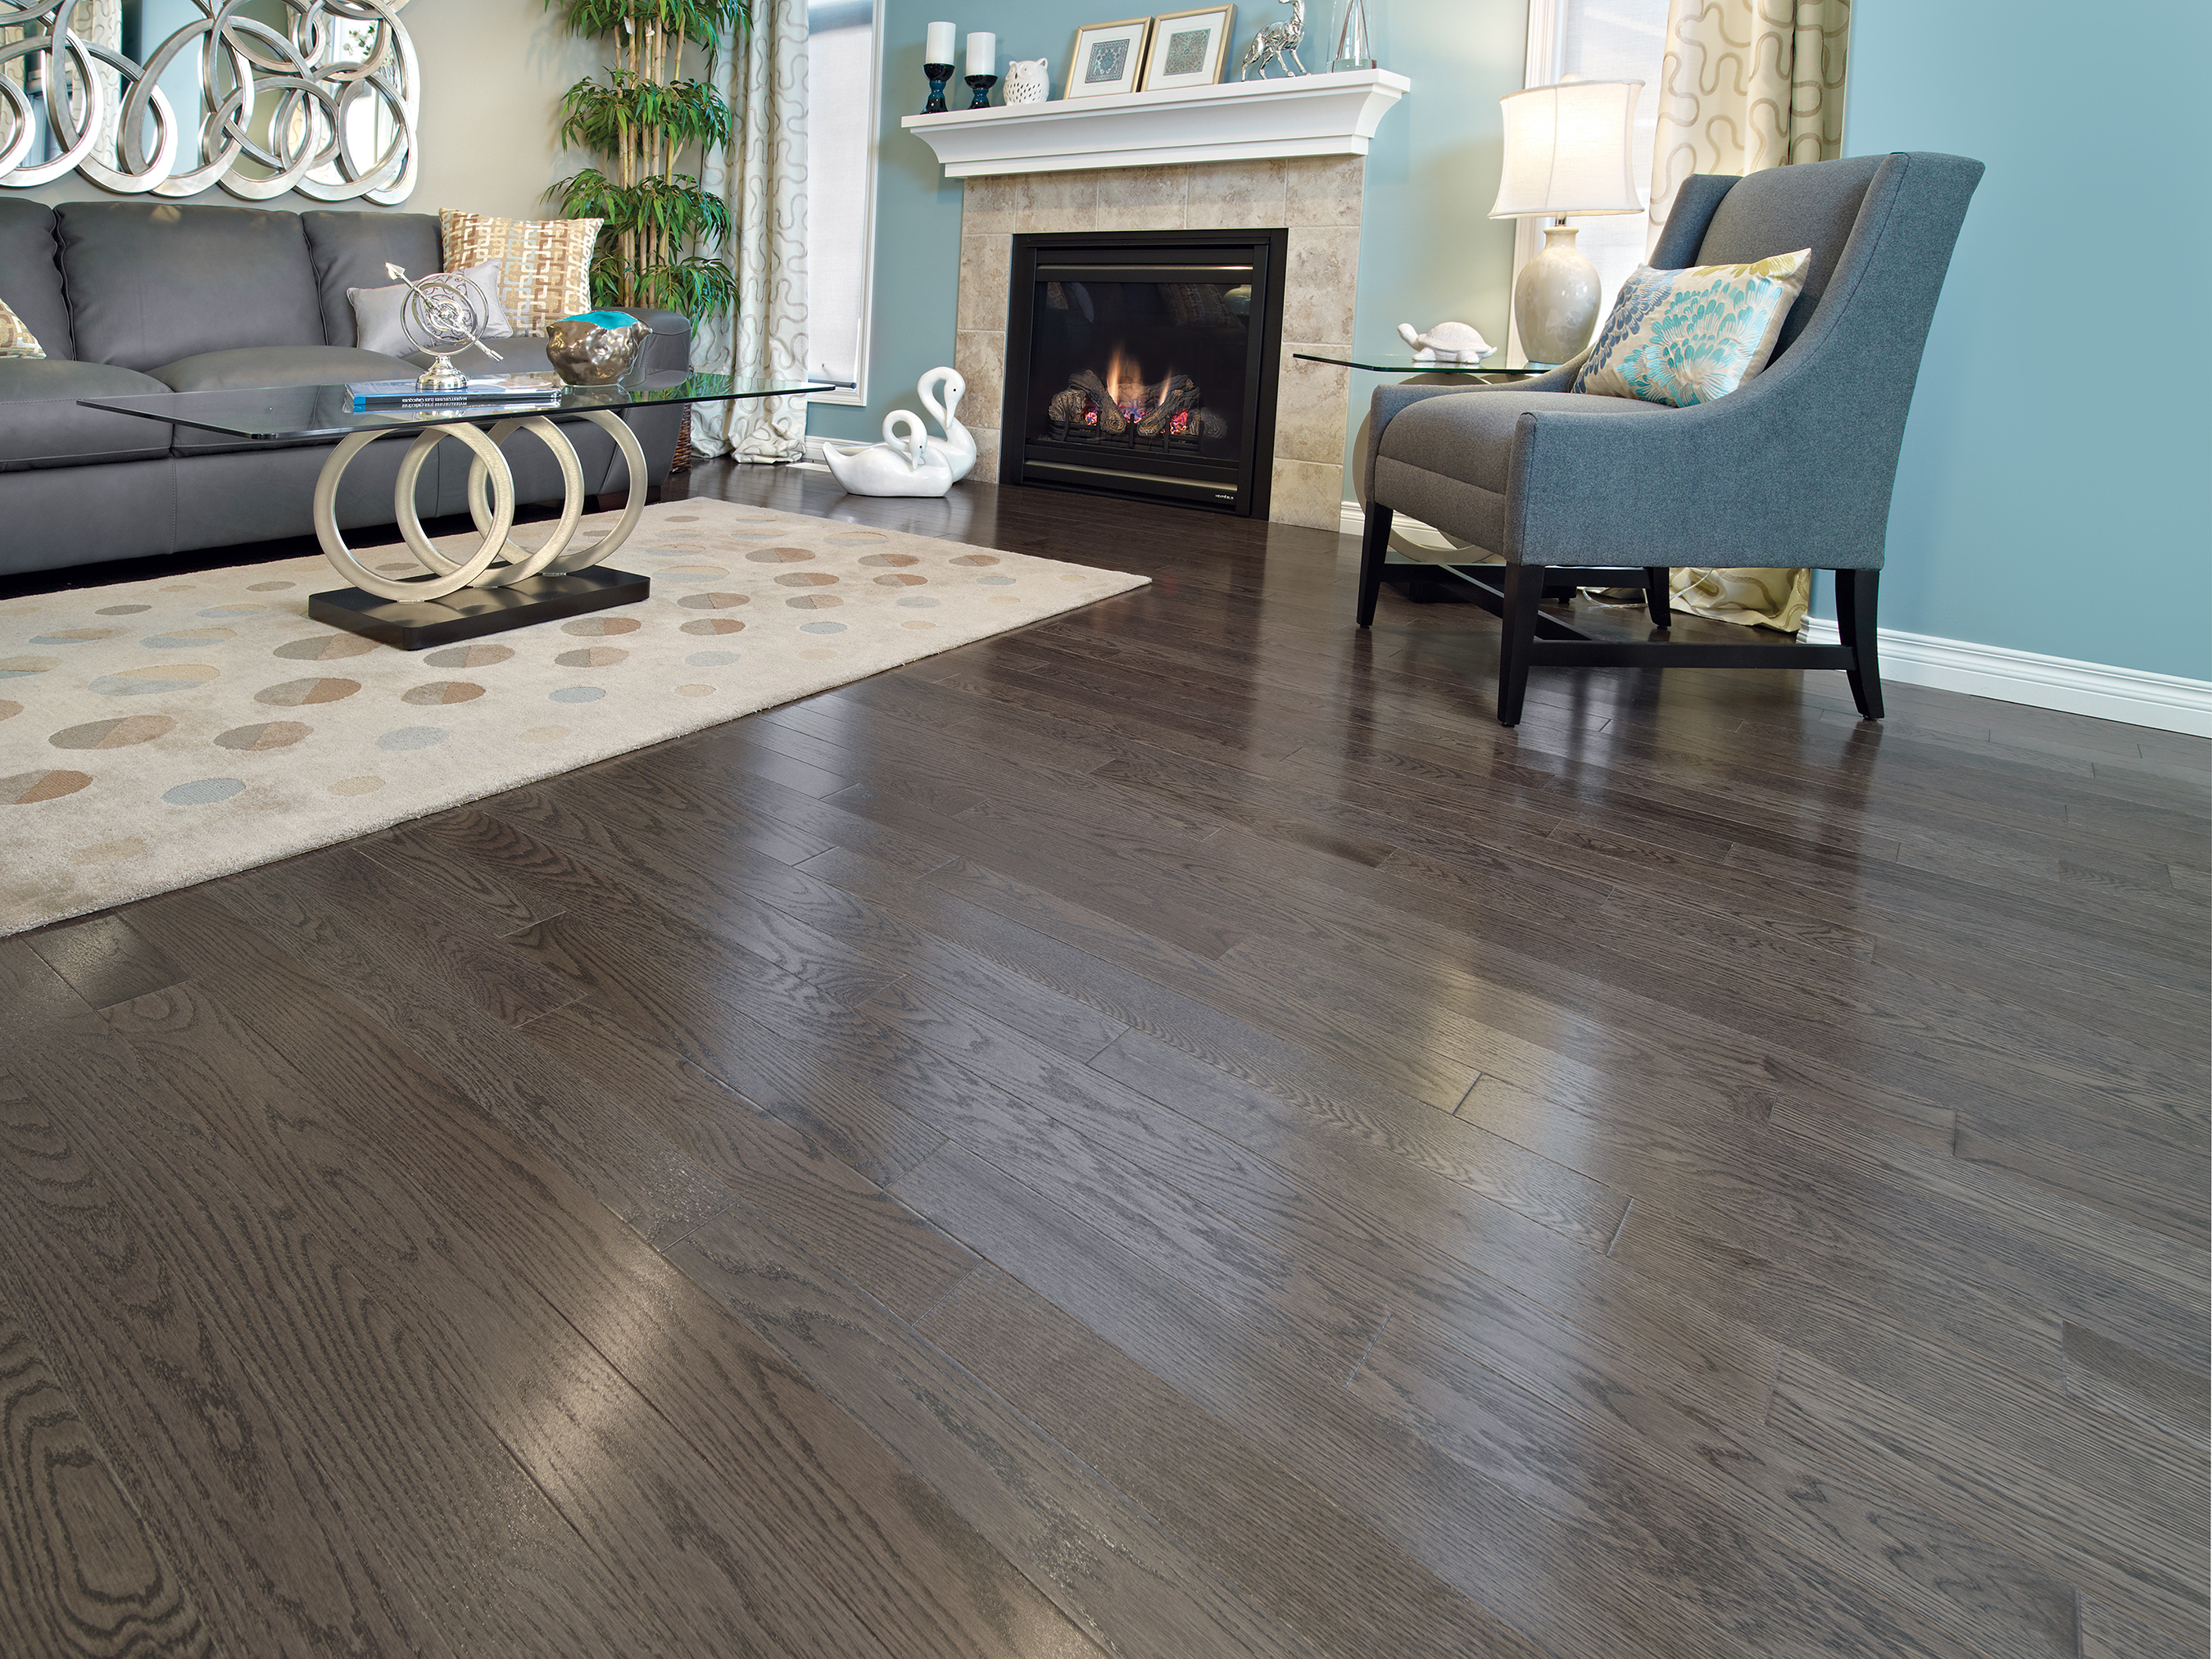 Red oak charcoal mirage hardwood floors call for special for Mirage hardwood flooring